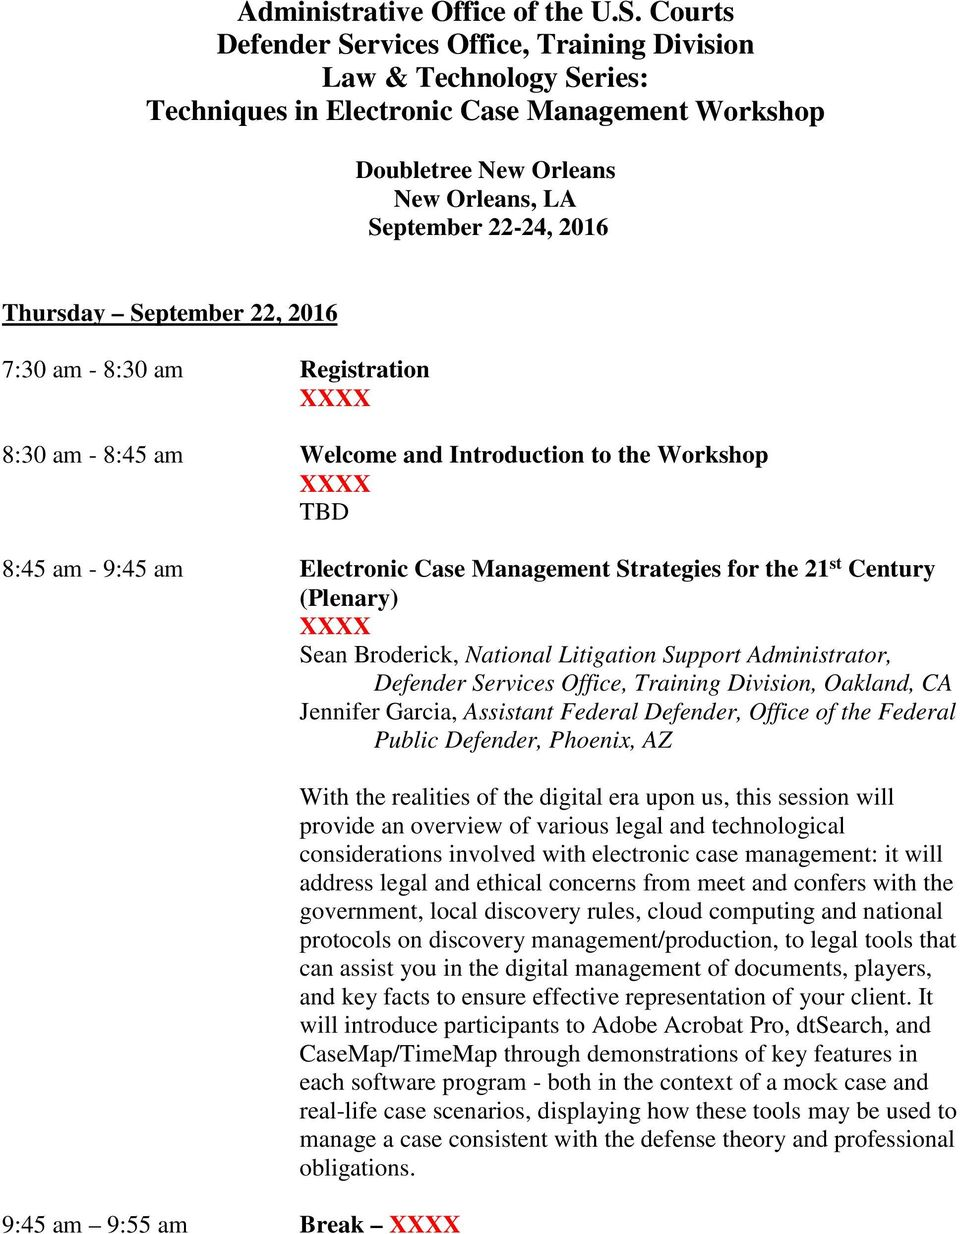 September 22, 2016 7:30 am - 8:30 am Registration 8:30 am - 8:45 am Welcome and Introduction to the Workshop TBD 8:45 am - 9:45 am Electronic Case Management Strategies for the 21 st Century